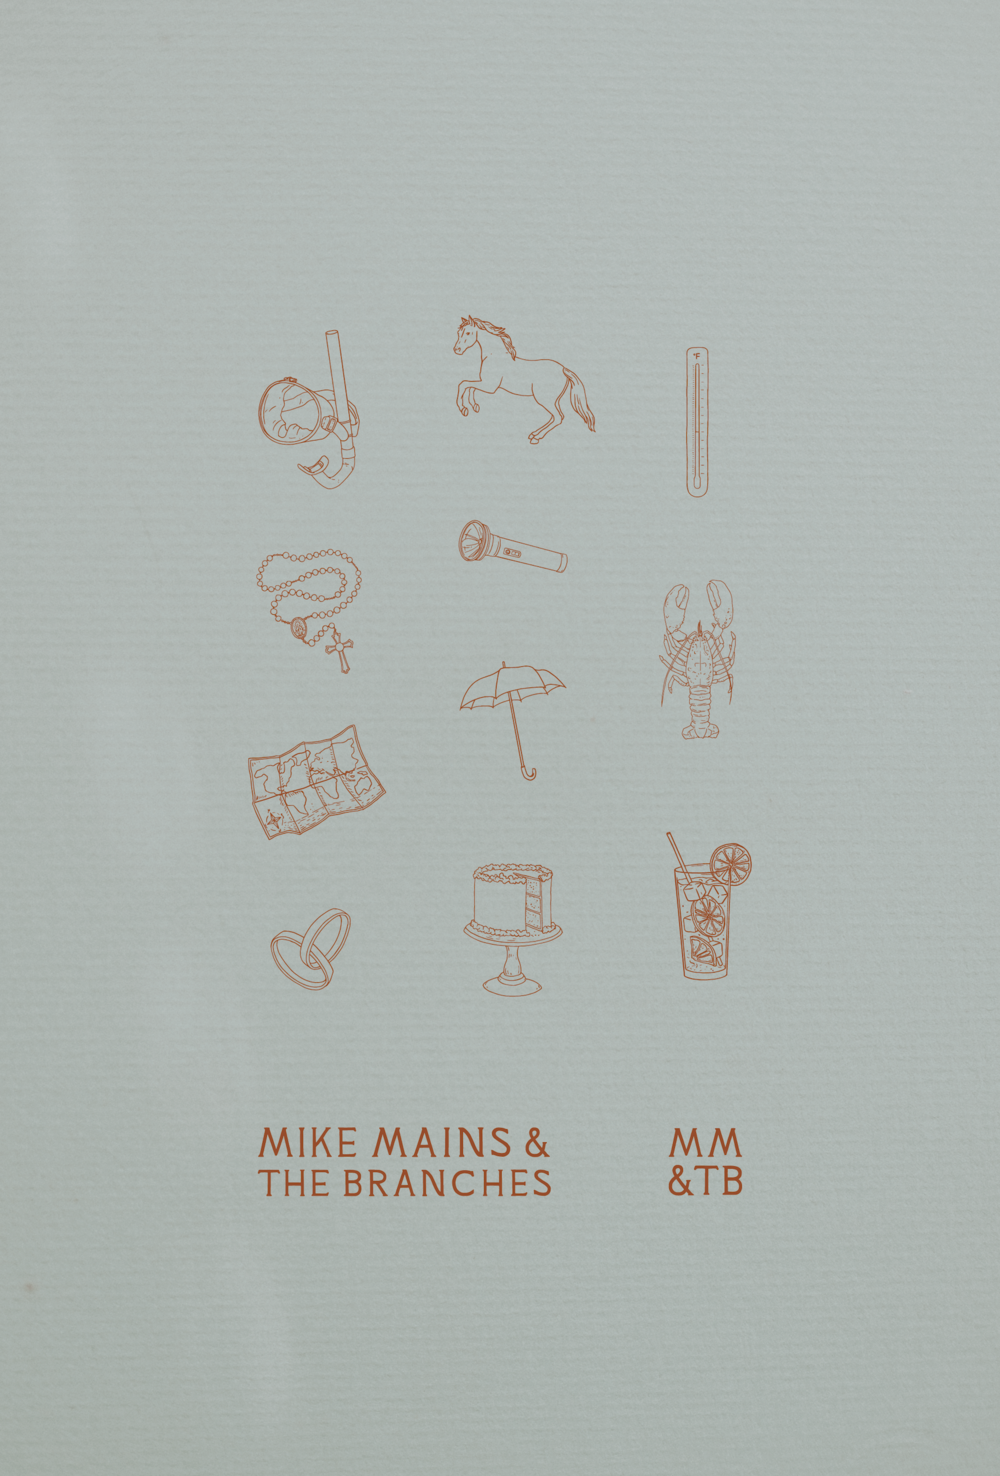 Mike Mains & The Branches | Album Illustrations and Logo Design